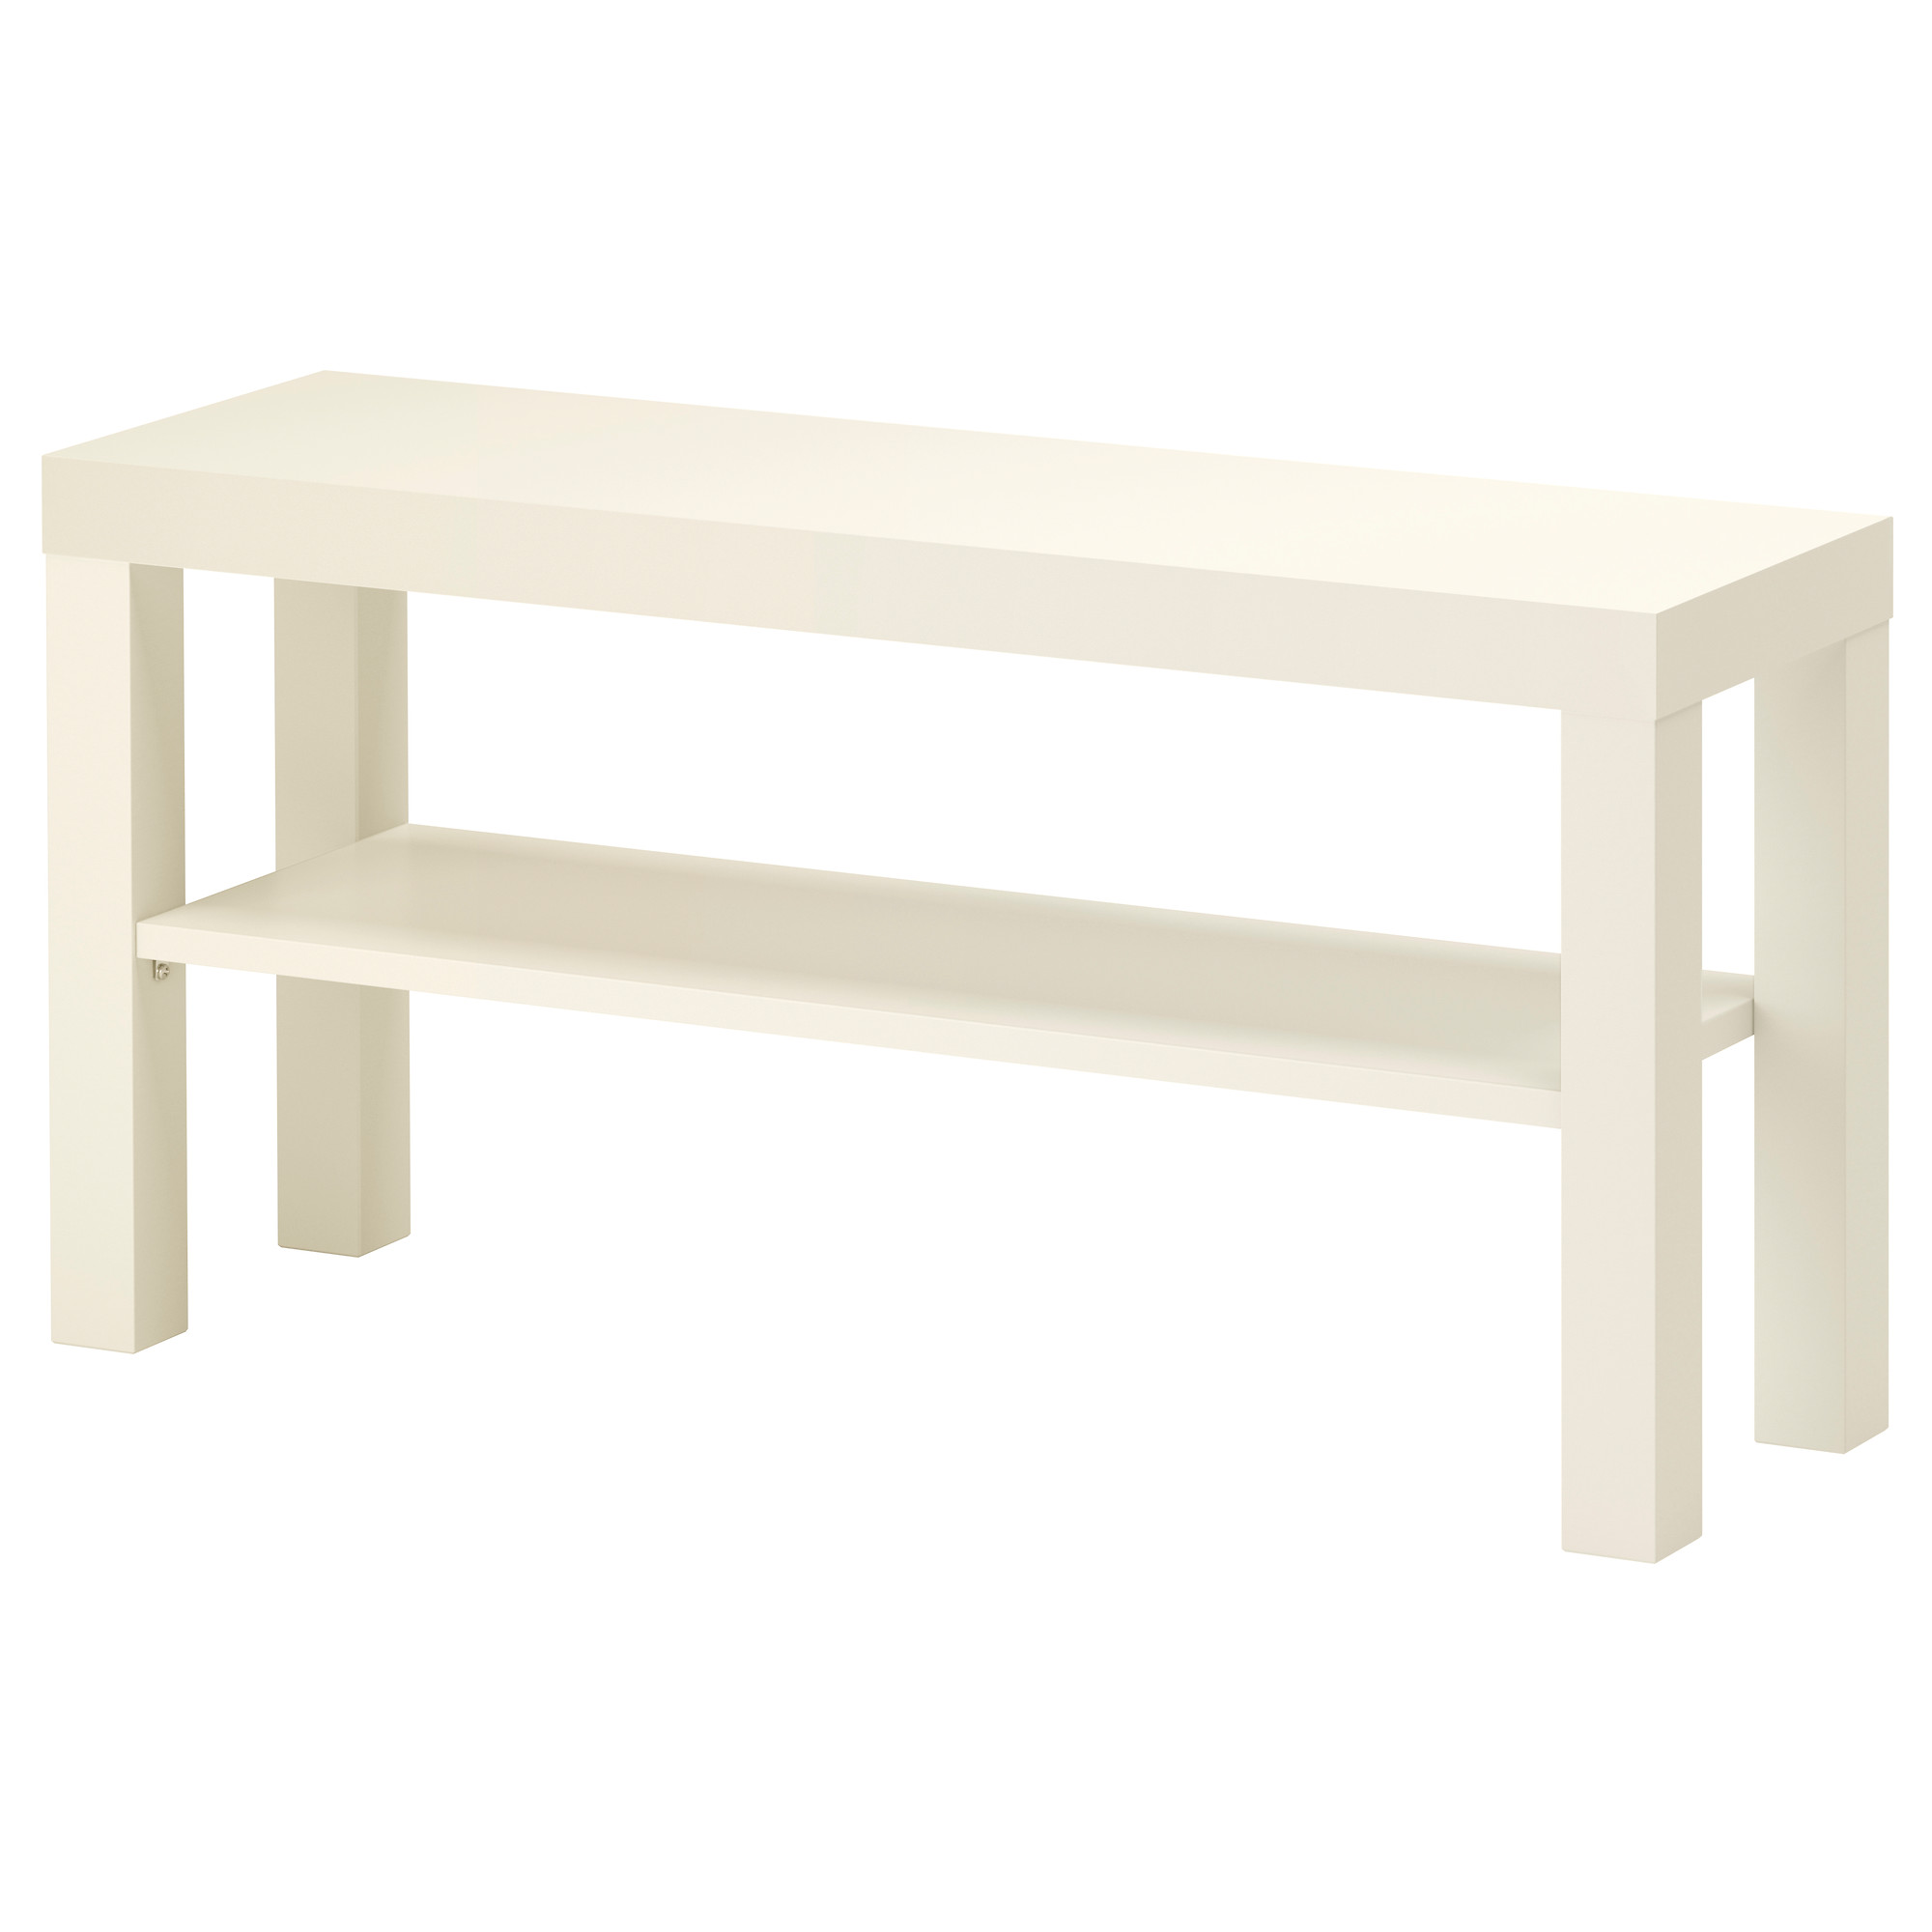 Badezimmer Wand Möbel Ikea Lack Tv Bench White End 10 23 2020 3 27 Am